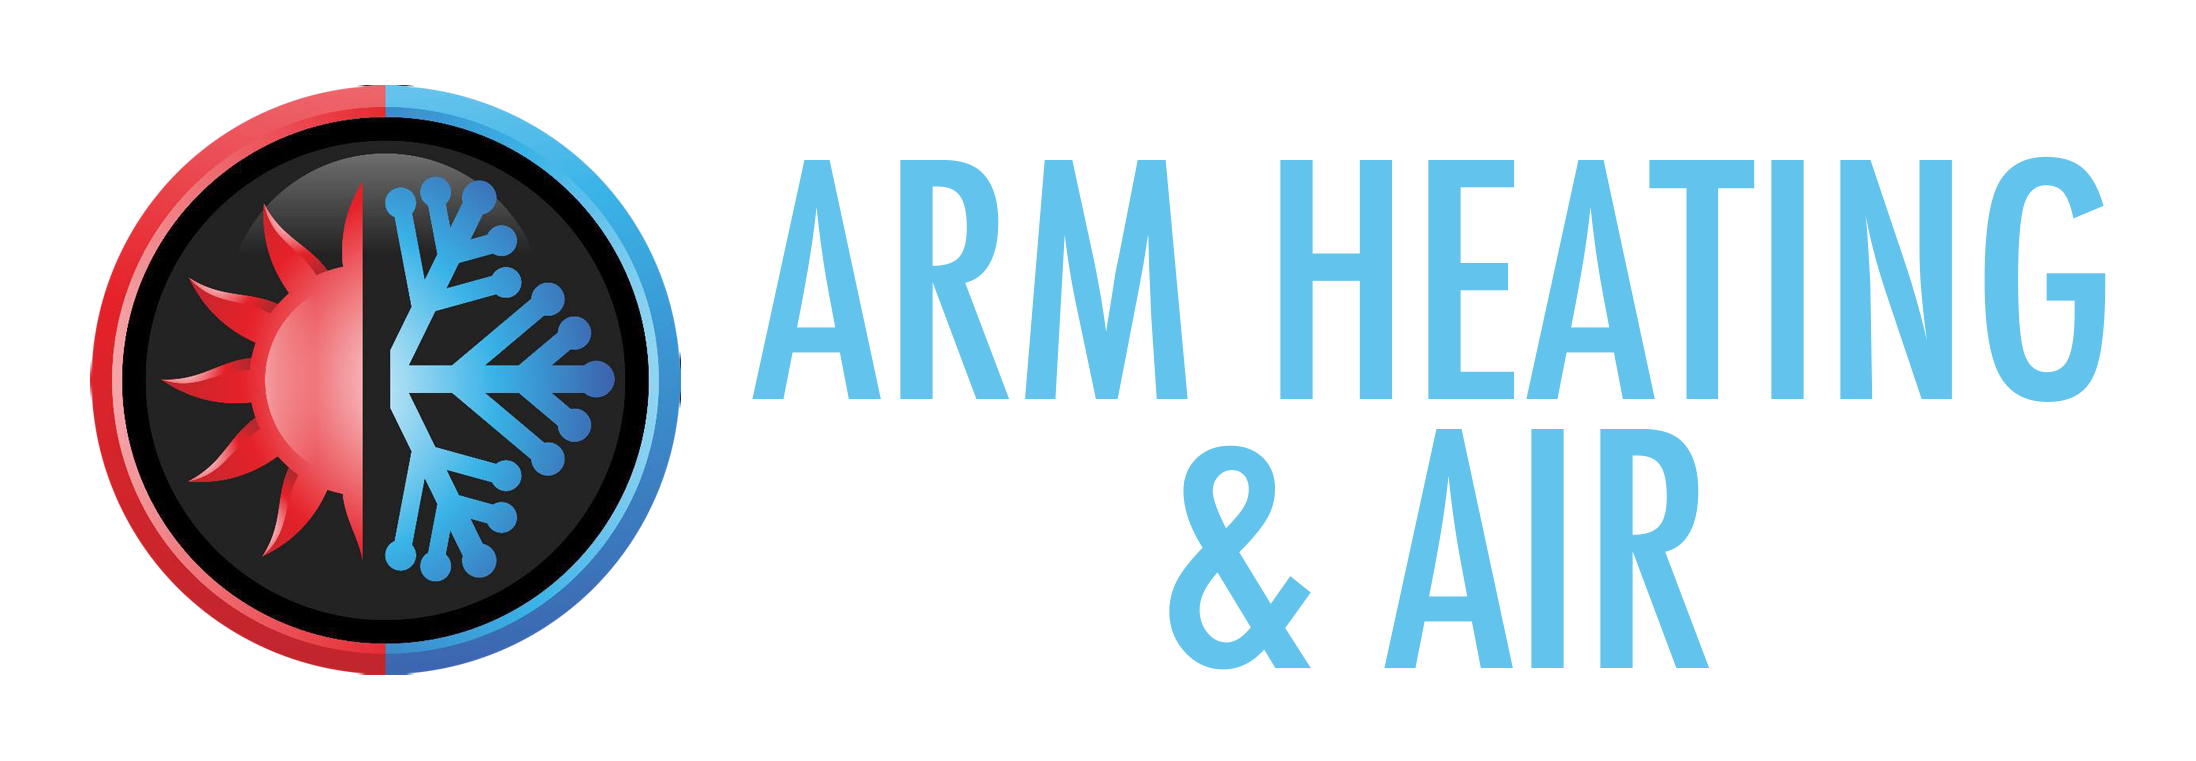 Arm Heating & Air, Plumbing Products & Services - Denver, PA ...